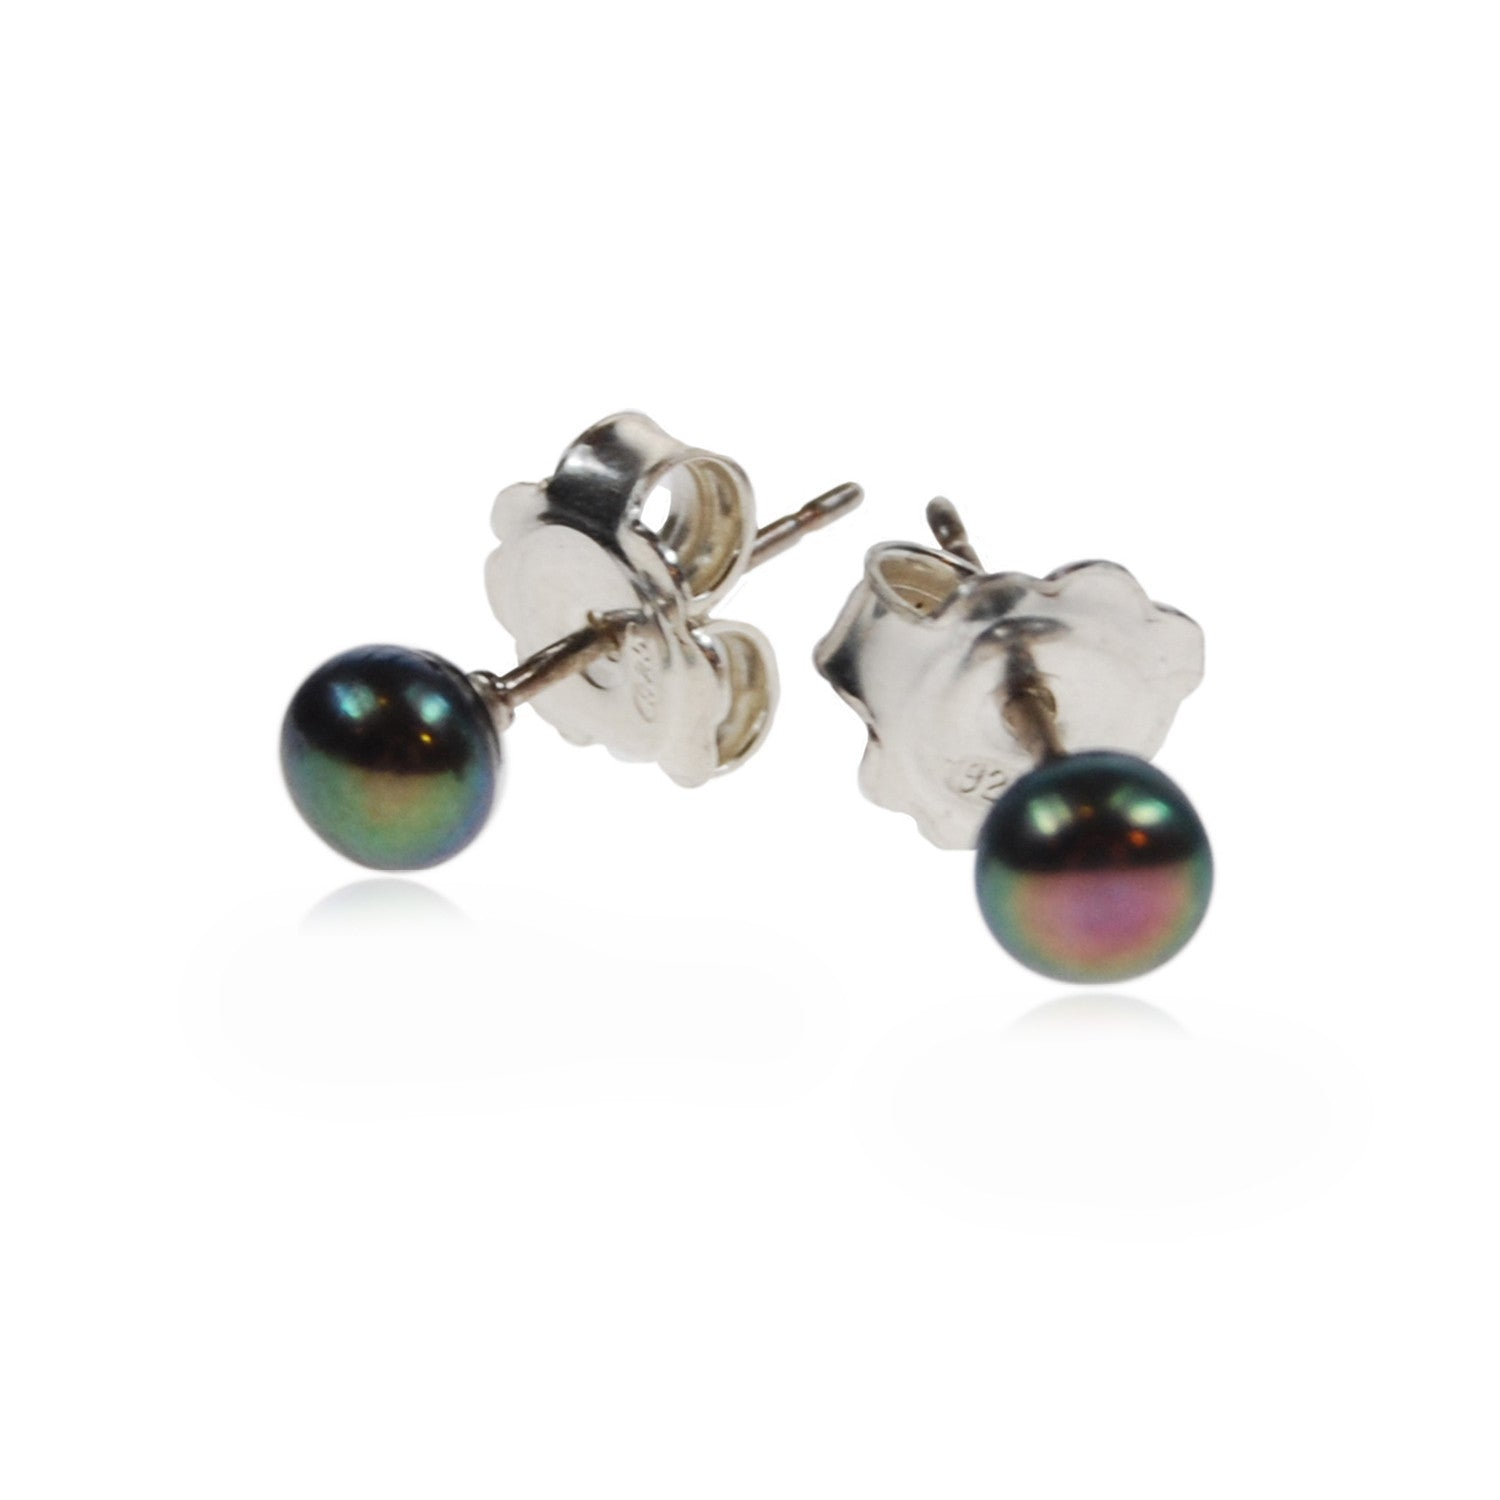 Petite Freshwater Pearl Studs on Silver Posts in Peacock Black